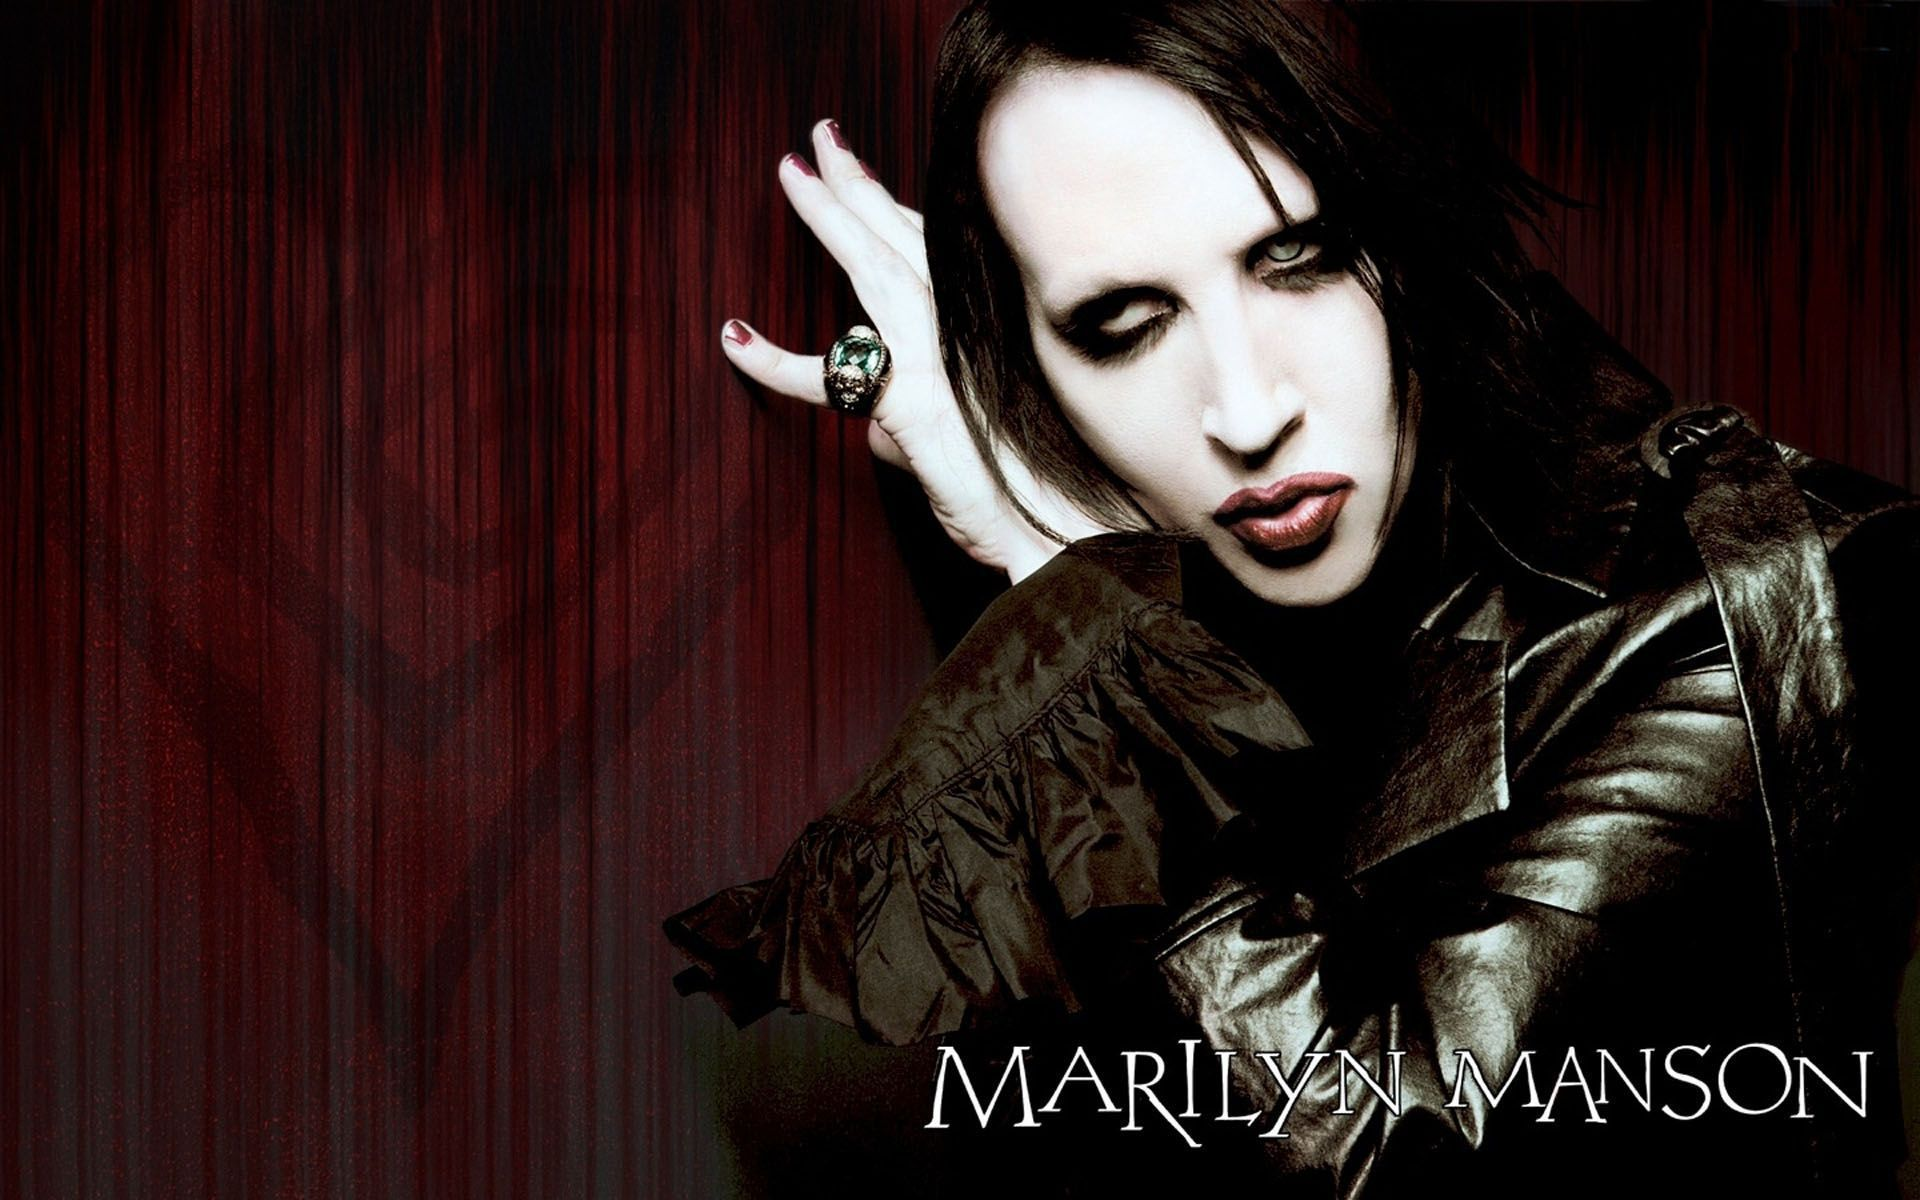 Marilyn Manson Wallpapers Backgrounds